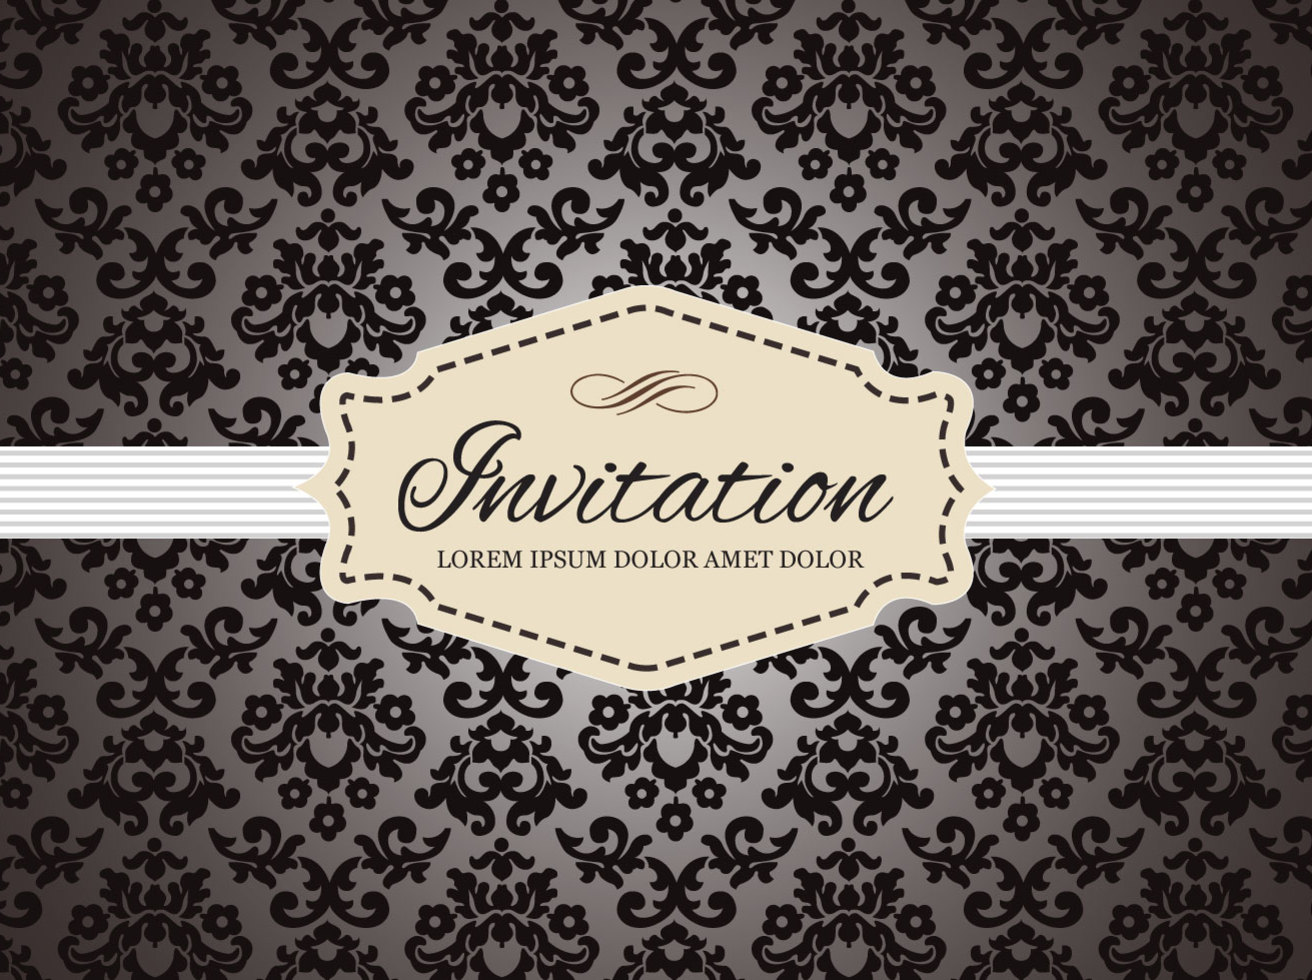 Free Vintage Invitation Card Vector Vector Art Graphics